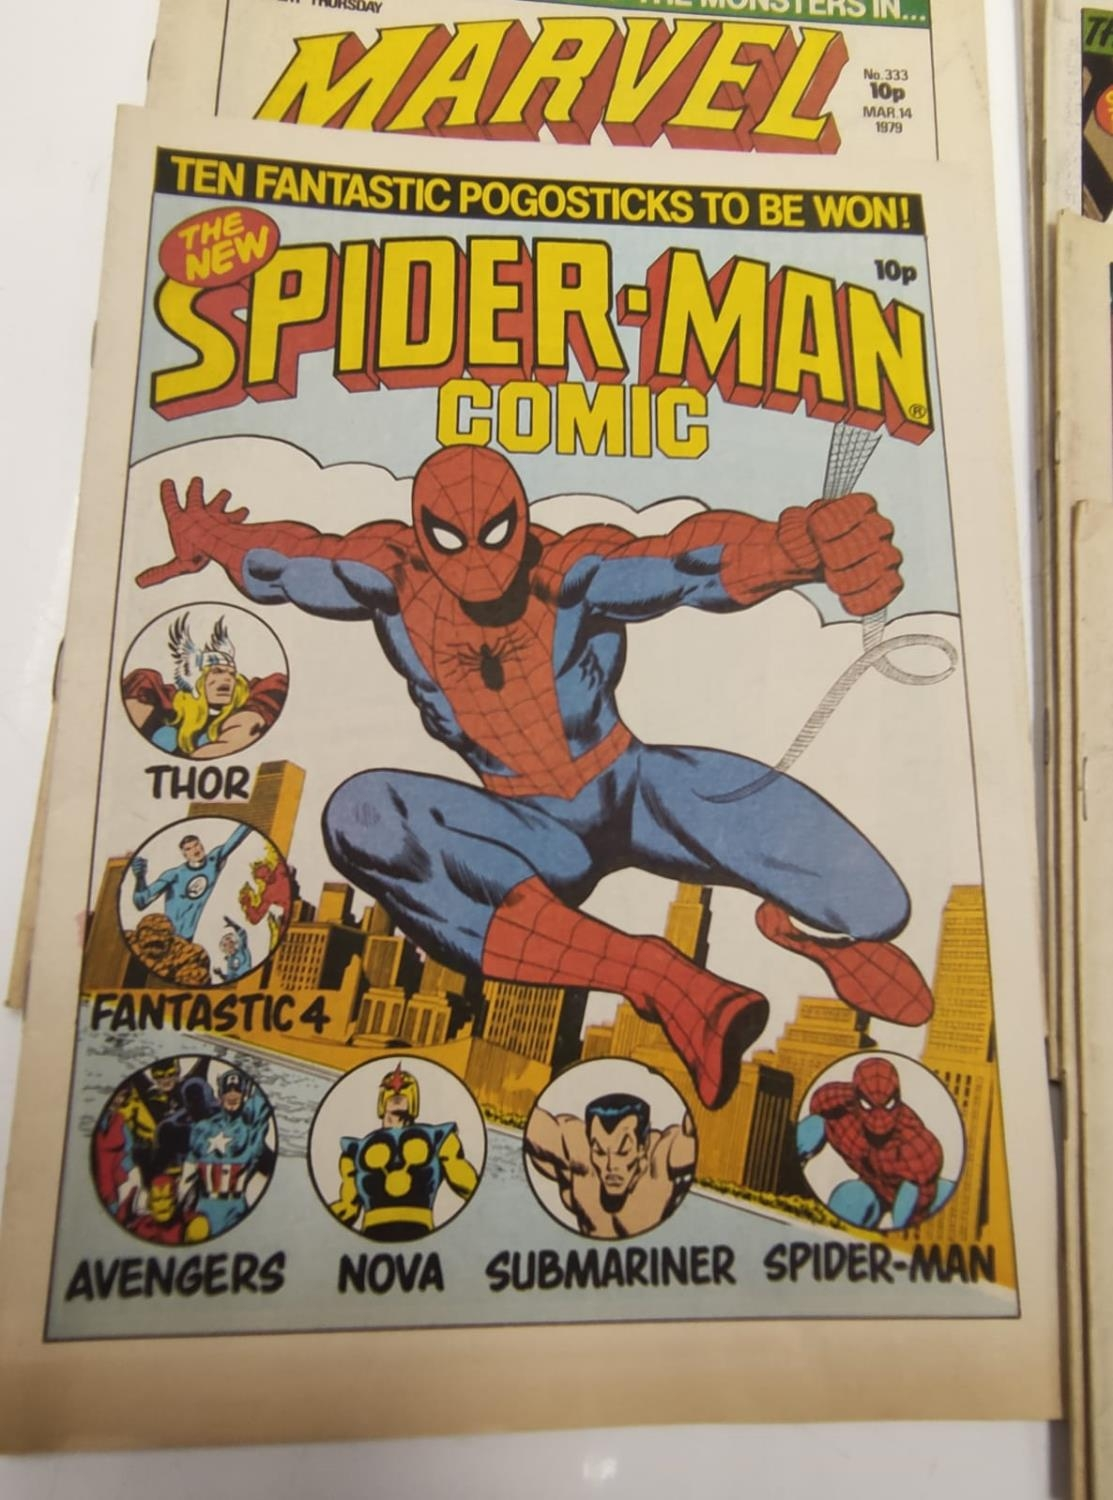 20 editions of mixed Vintage Marvel Comics. - Image 32 of 56